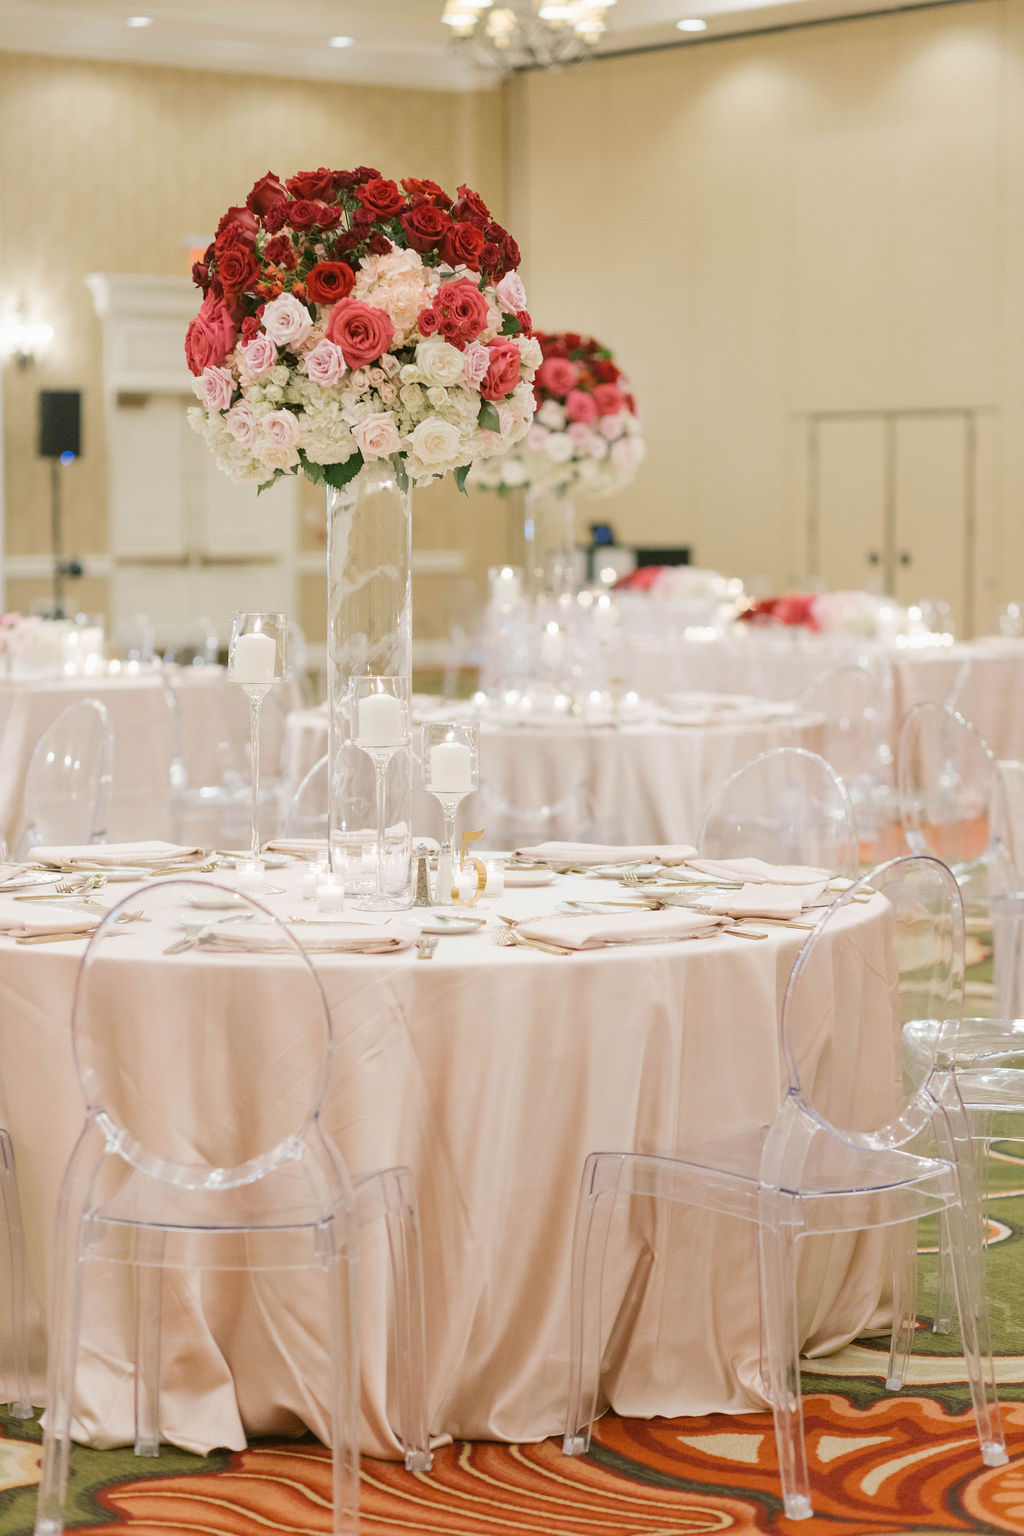 Romantic Ballroom Wedding Reception Decor, Round Table with Ivory Linen, Ghost Acrylic Chairs, Tall Red, Blush Pink and White Roses Floral Centerpieces   St. Petersburg Wedding Venue The Vinoy Renaissance   Tampa Wedding Planner Parties A'la Carte   Wedding Florist Bruce Wayne Florals   Wedding Rentals A Chair Affair   Draping Gabro Event Services   Over the Top Rental Linens